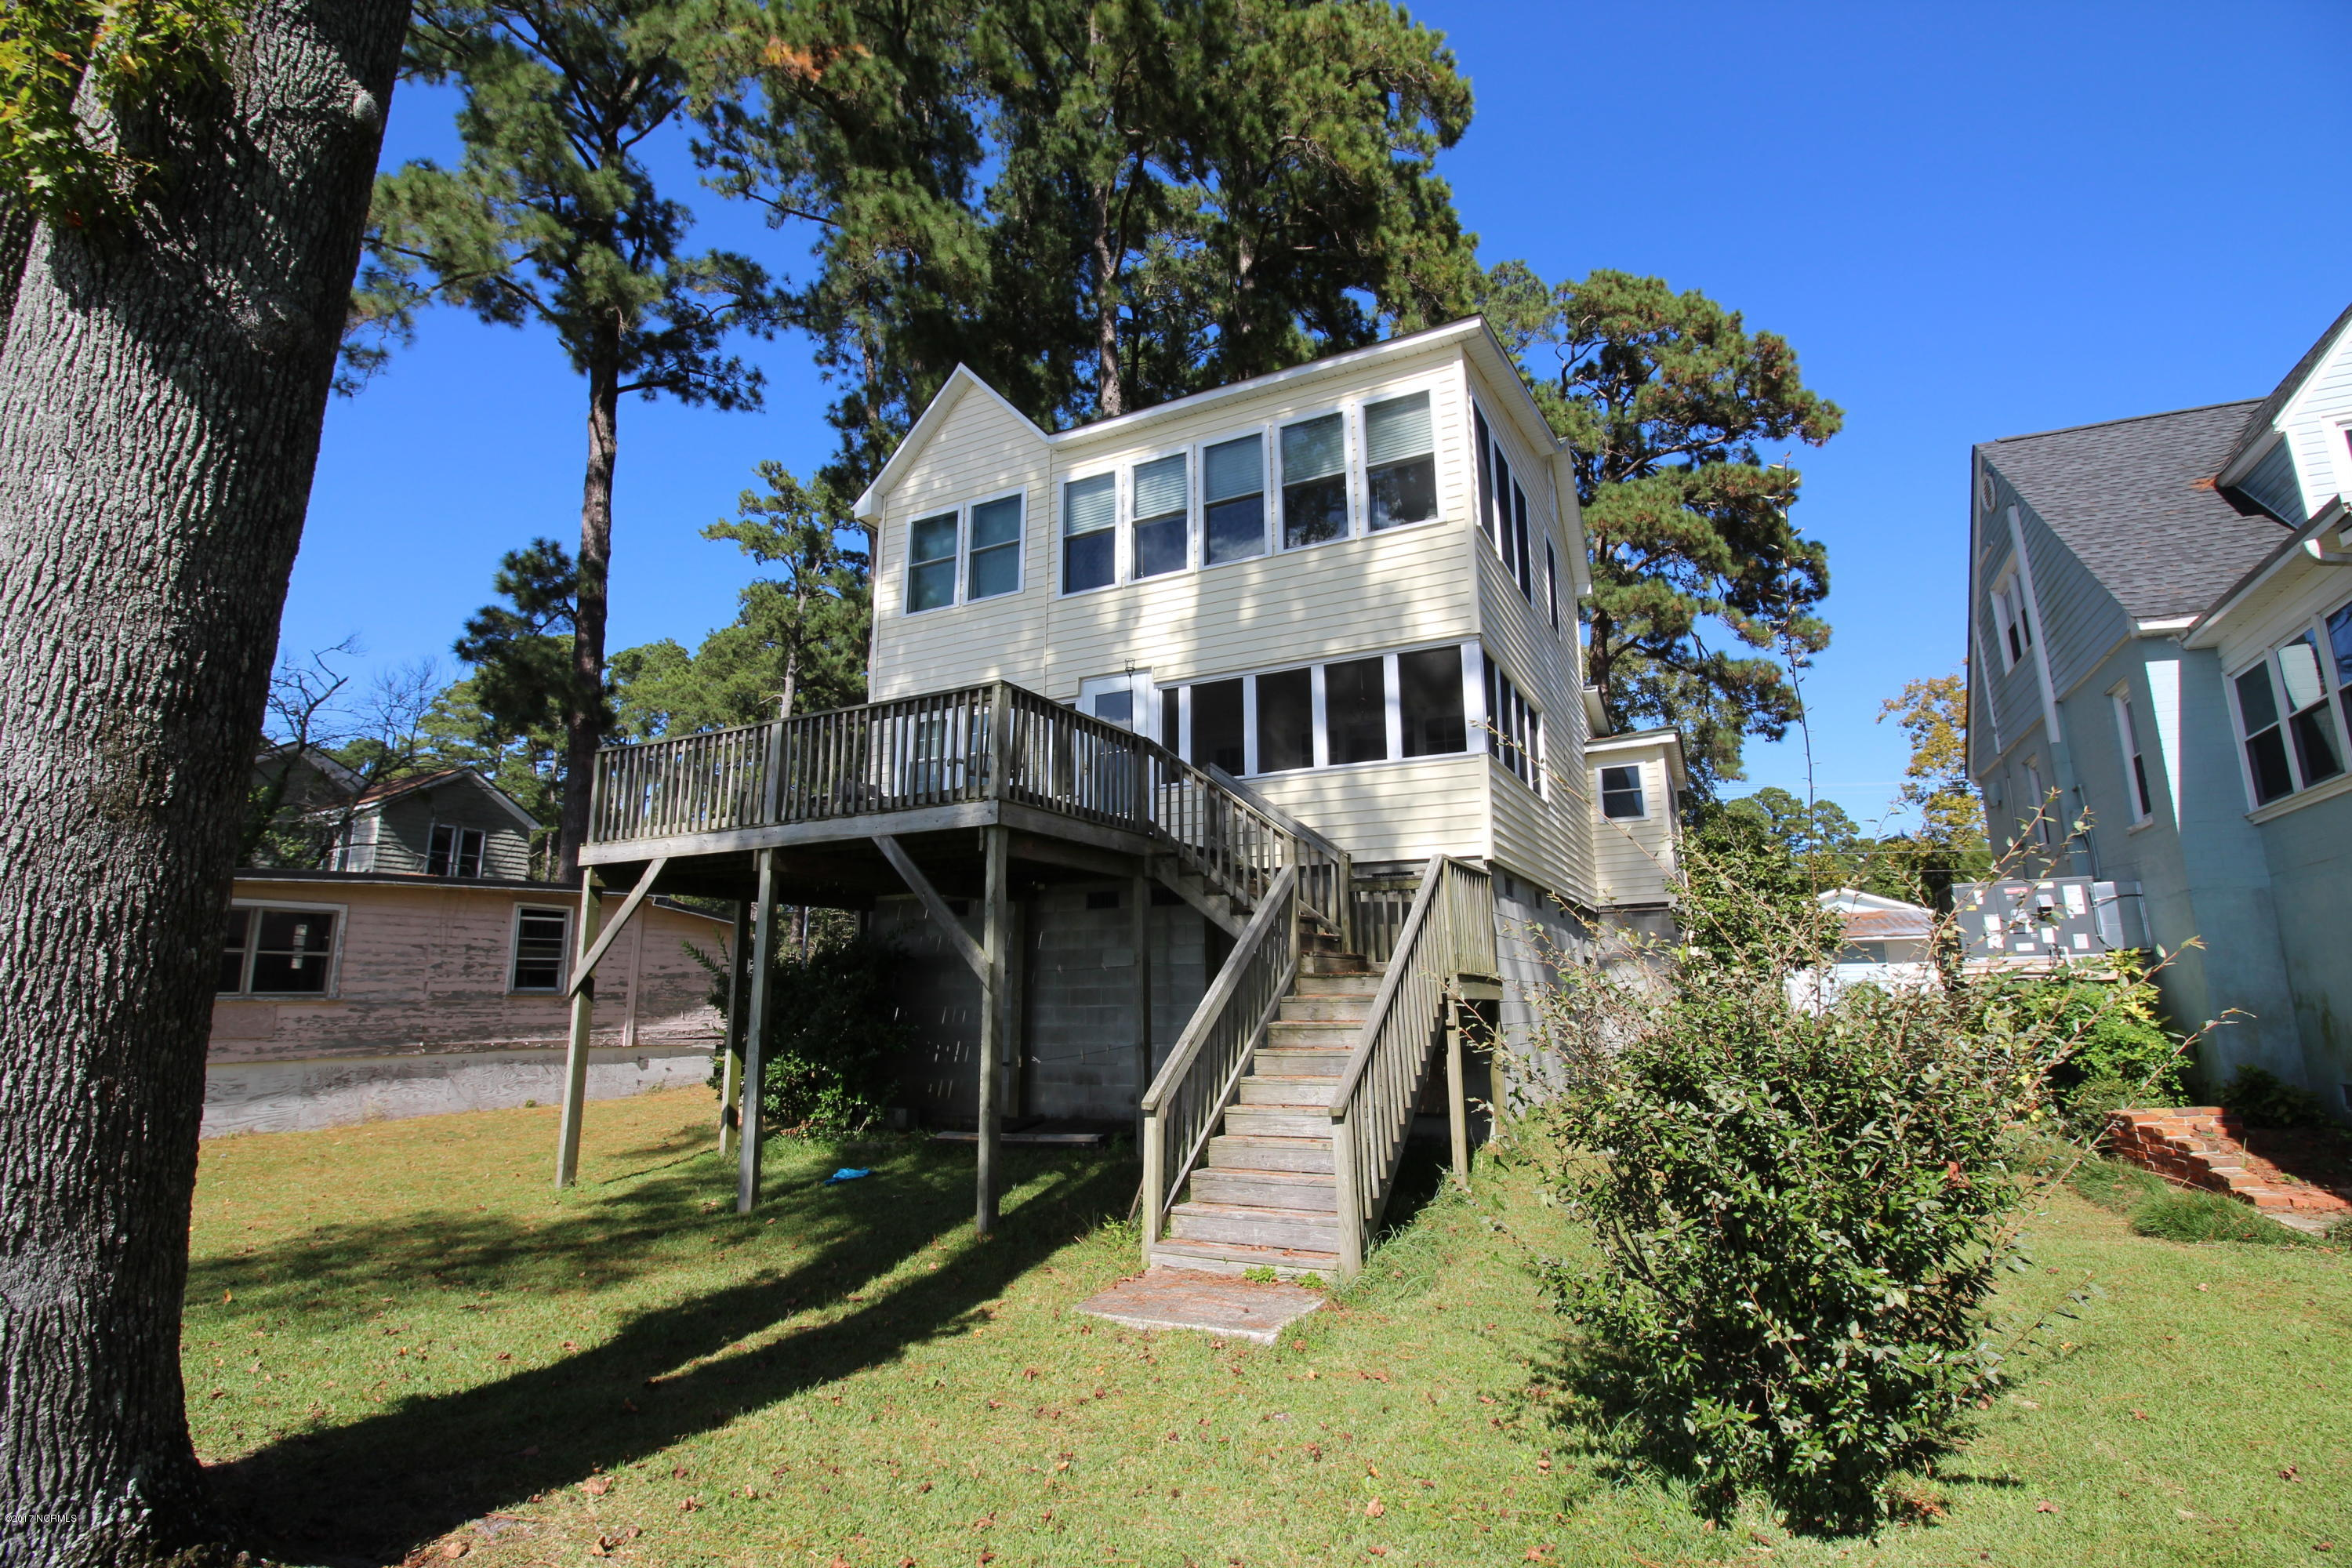 218 Shady Banks Beach Road, Washington, North Carolina, 3 Bedrooms Bedrooms, 7 Rooms Rooms,1 BathroomBathrooms,Single family residence,For sale,Shady Banks Beach,100084888